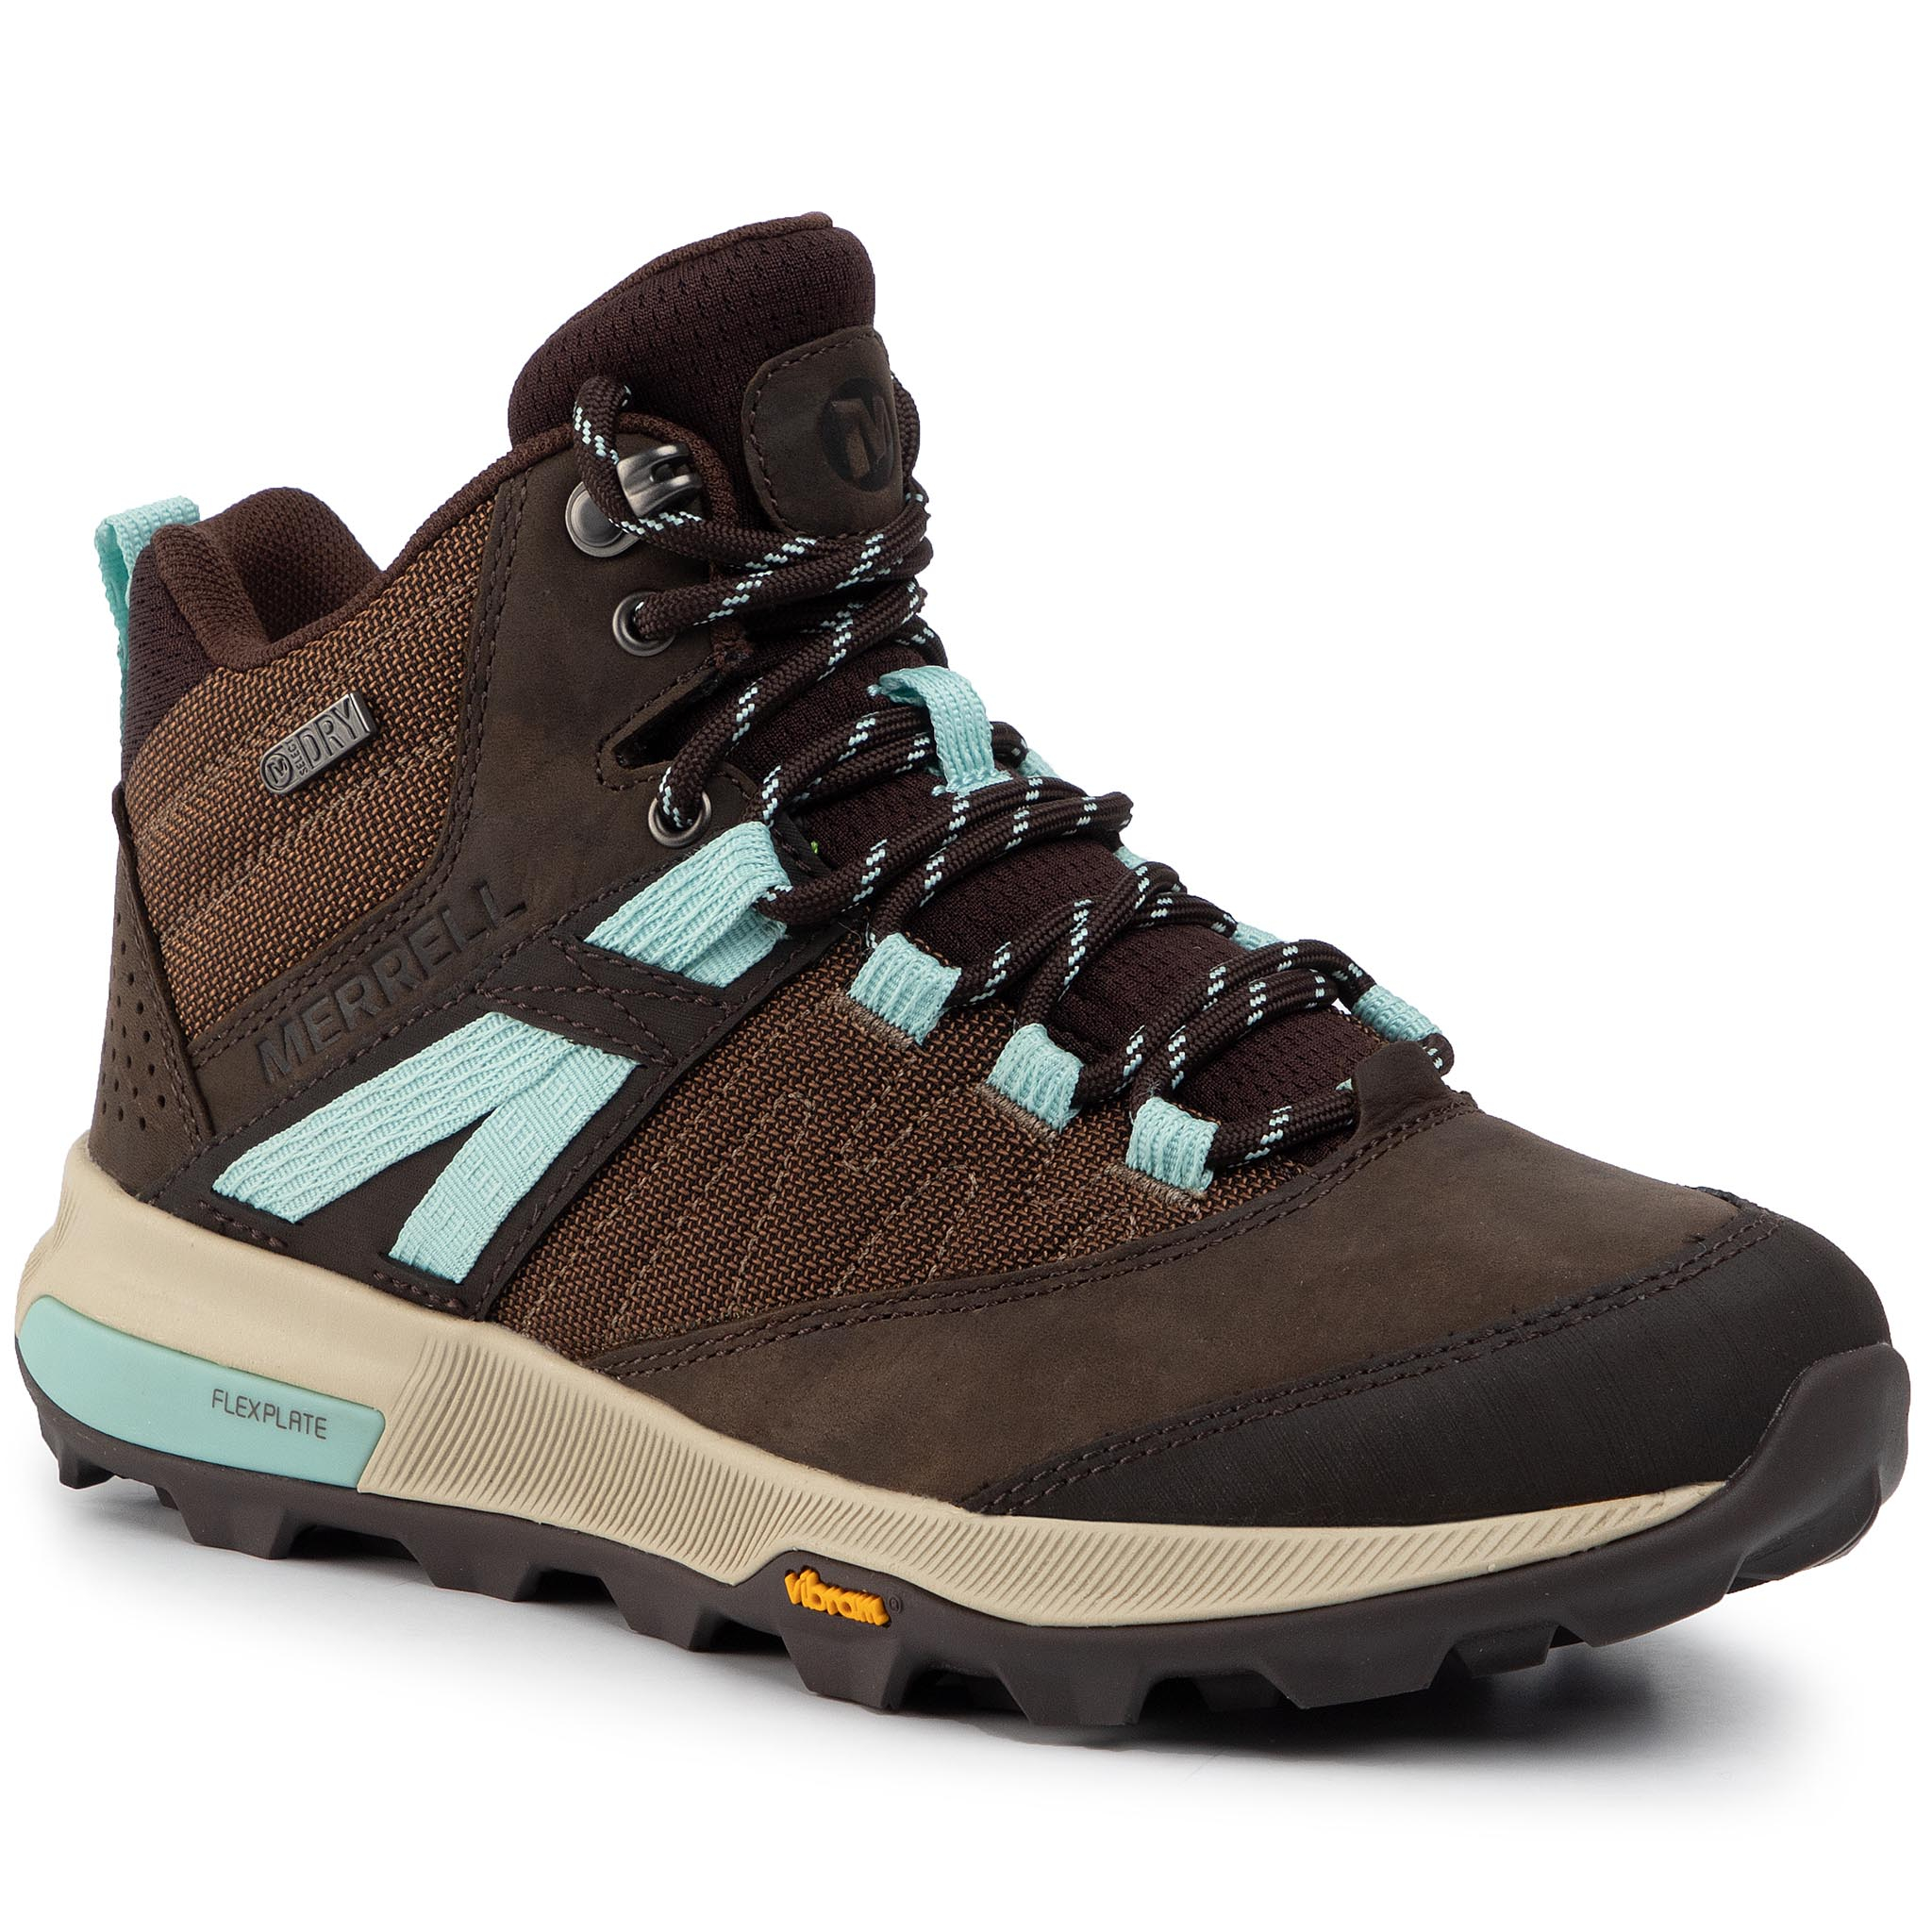 Trekkings Merrell - Zion Mid Wp J99624 Seal Brown imagine epantofi.ro 2021